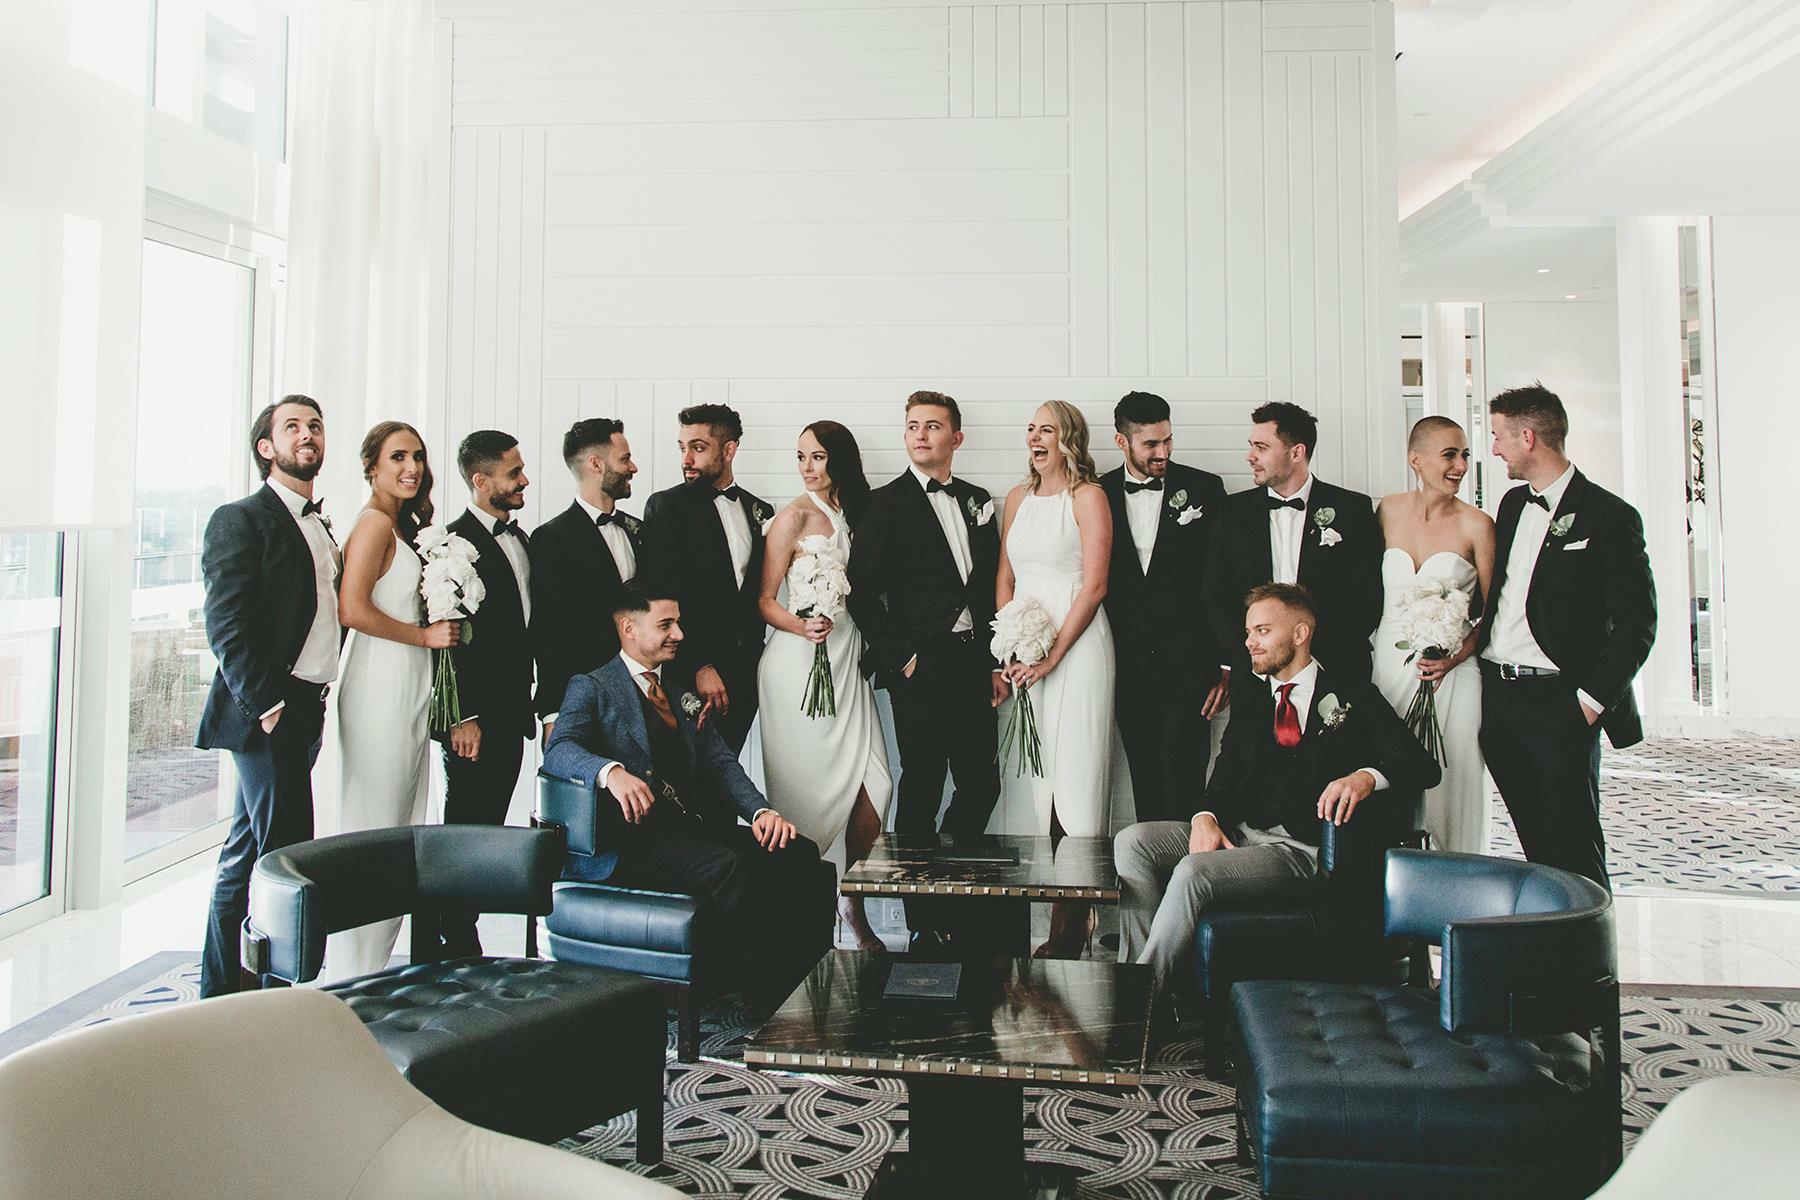 A group wedding photo at Crown Hotel Perth